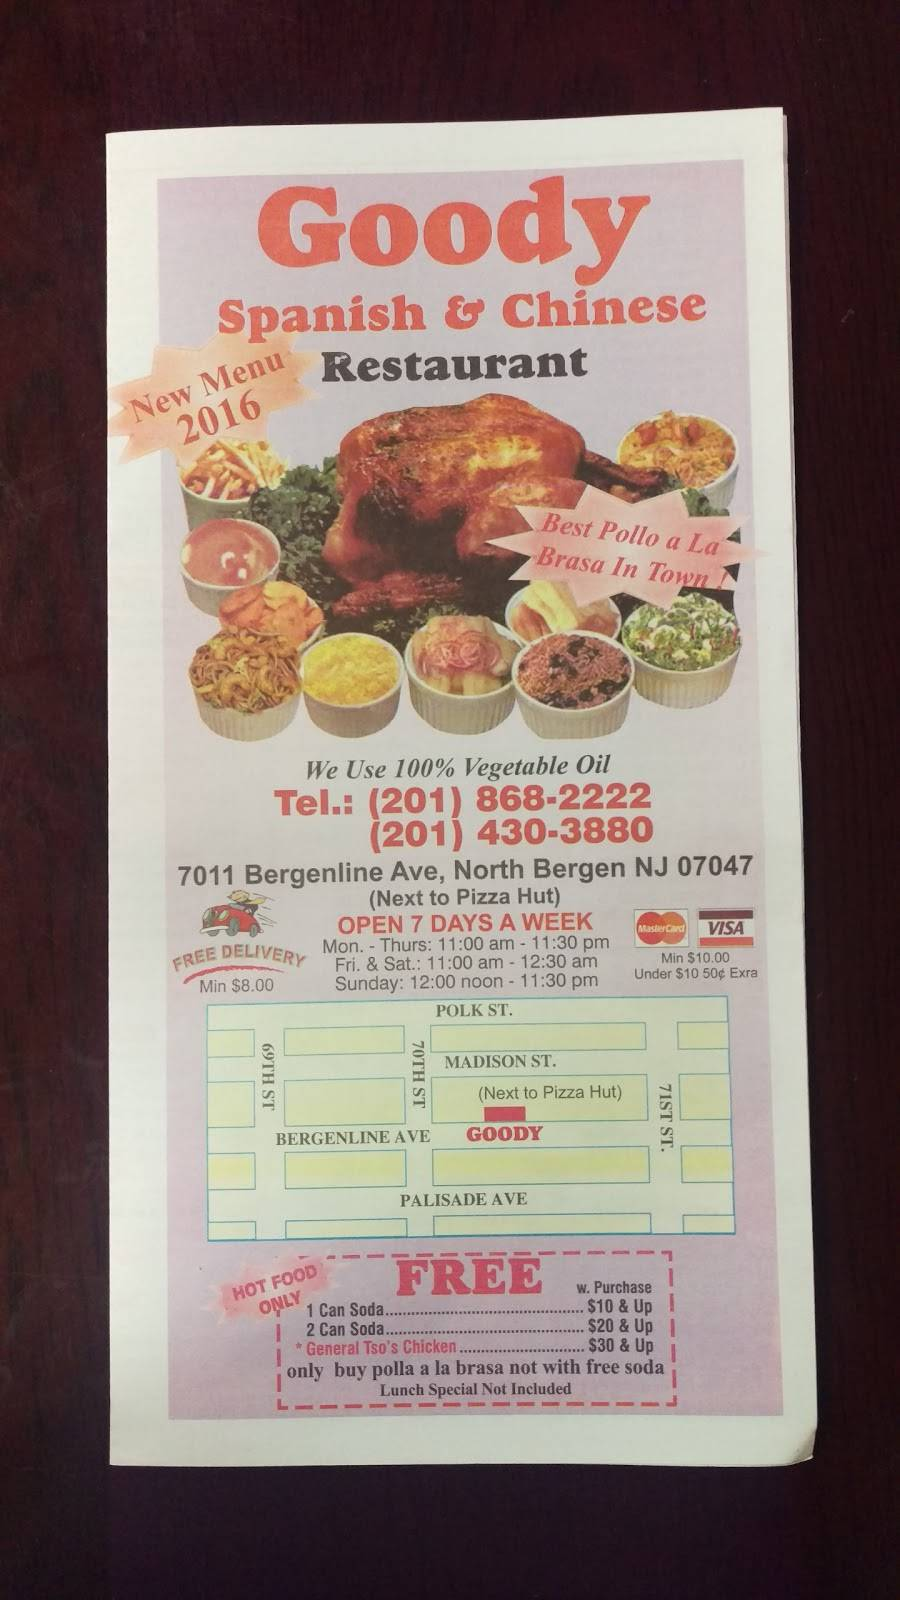 Goody | restaurant | 7011 Bergenline Ave, North Bergen, NJ 07047, USA | 2018682222 OR +1 201-868-2222